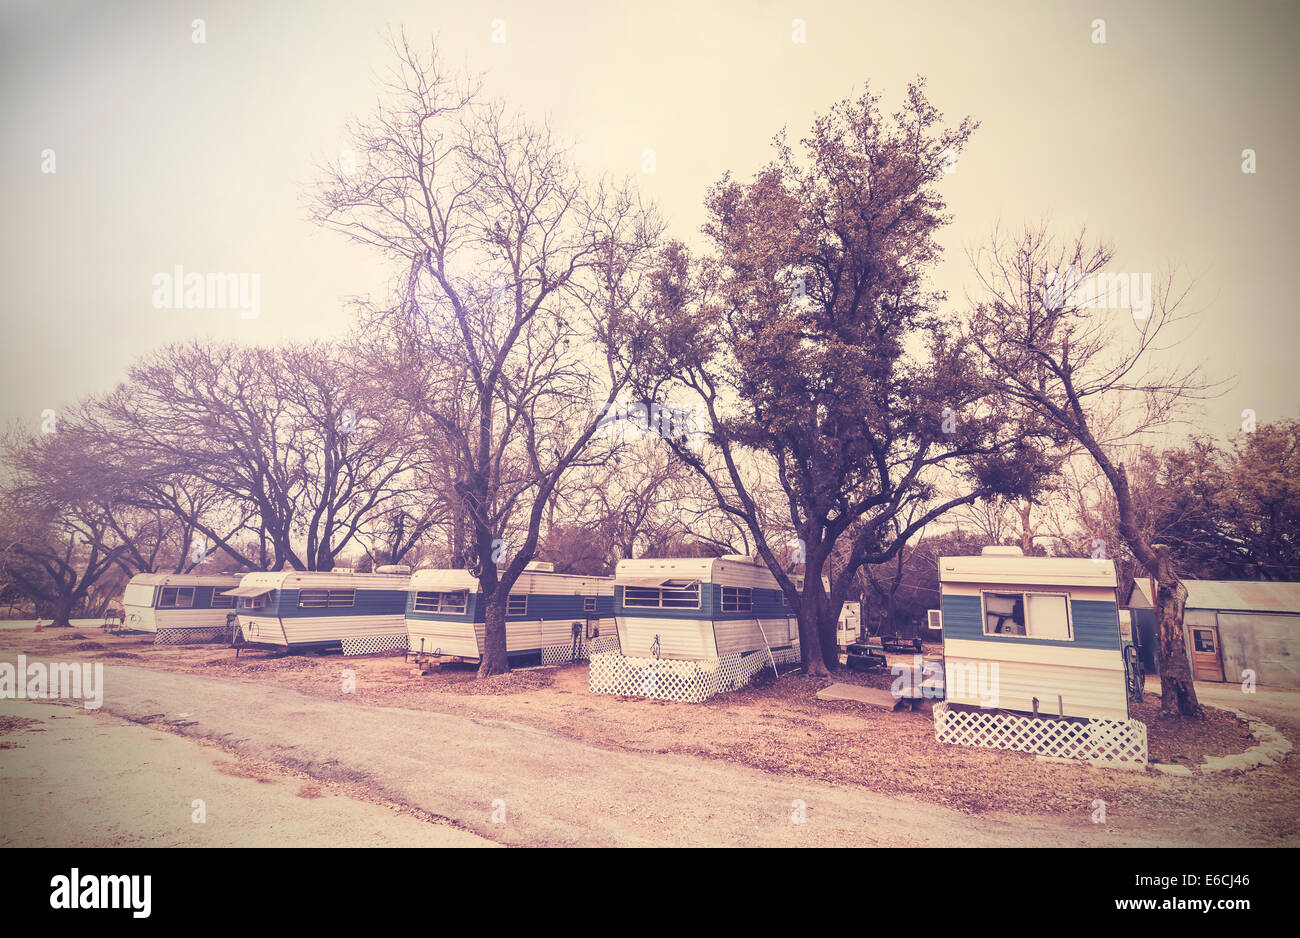 Vintage picture of american house trailers estate, USA countryside. Stock Photo